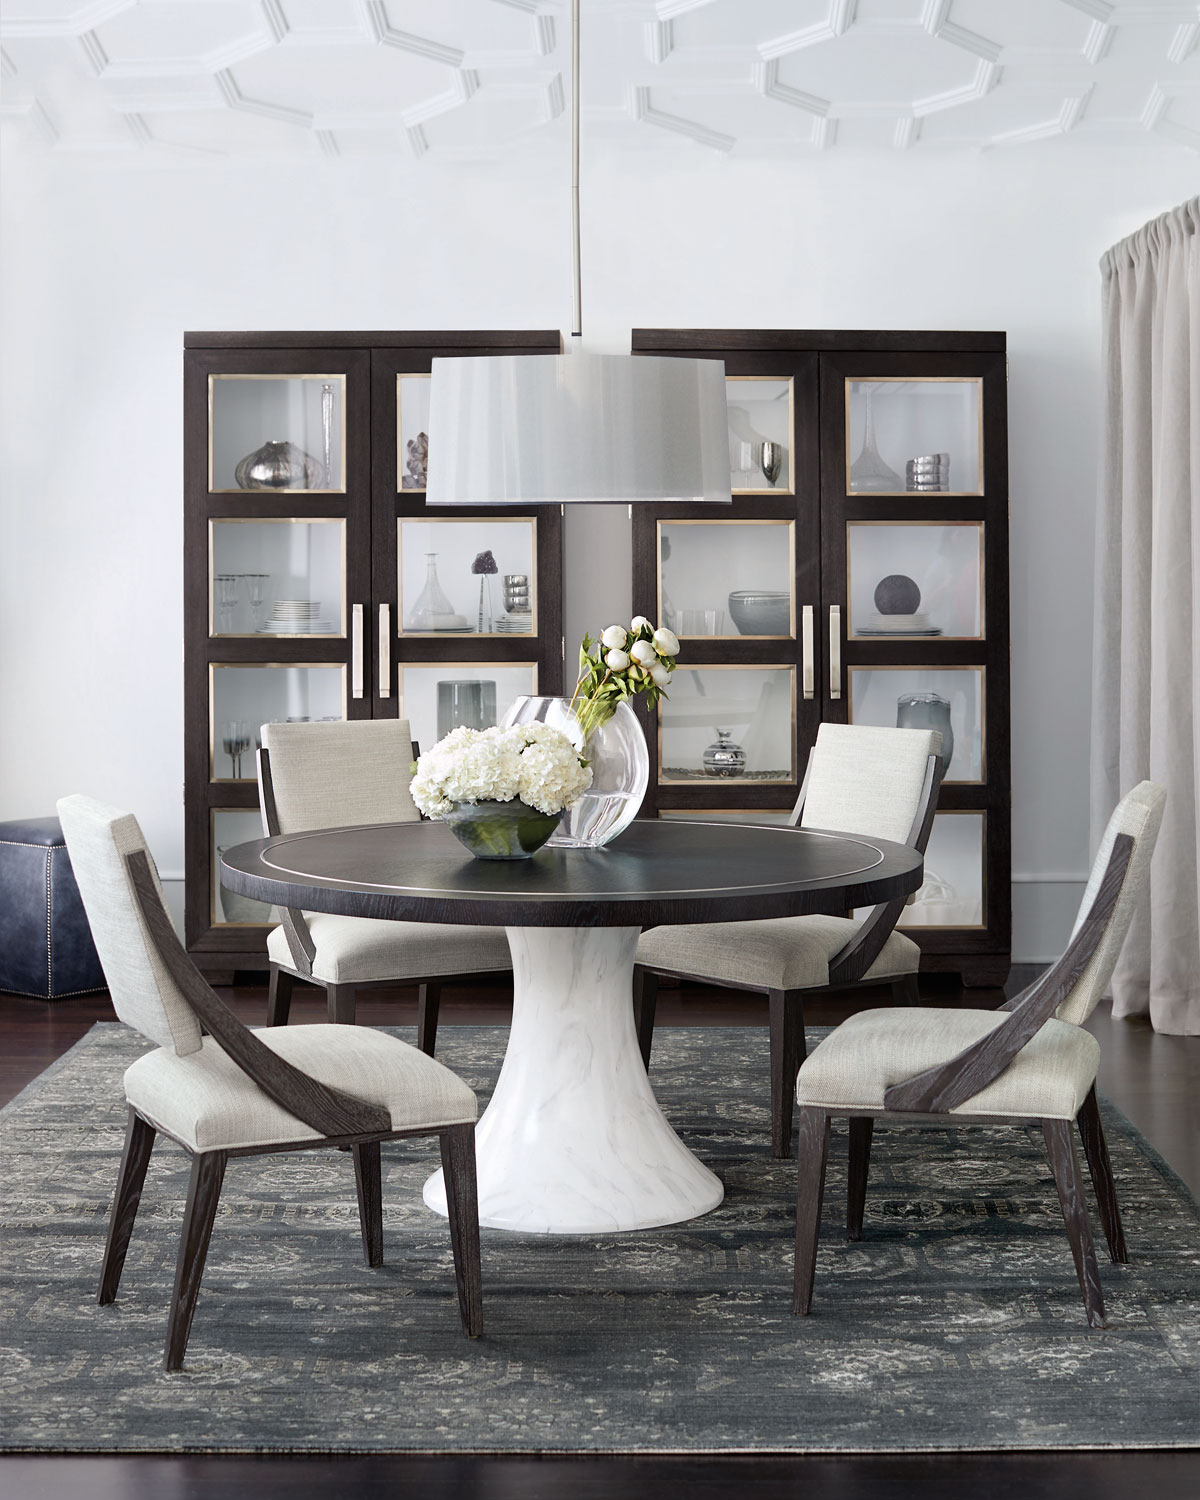 Imported Furniture Online: Bernhardt Decorage Round Hand-Painted Marble-Finish Dining